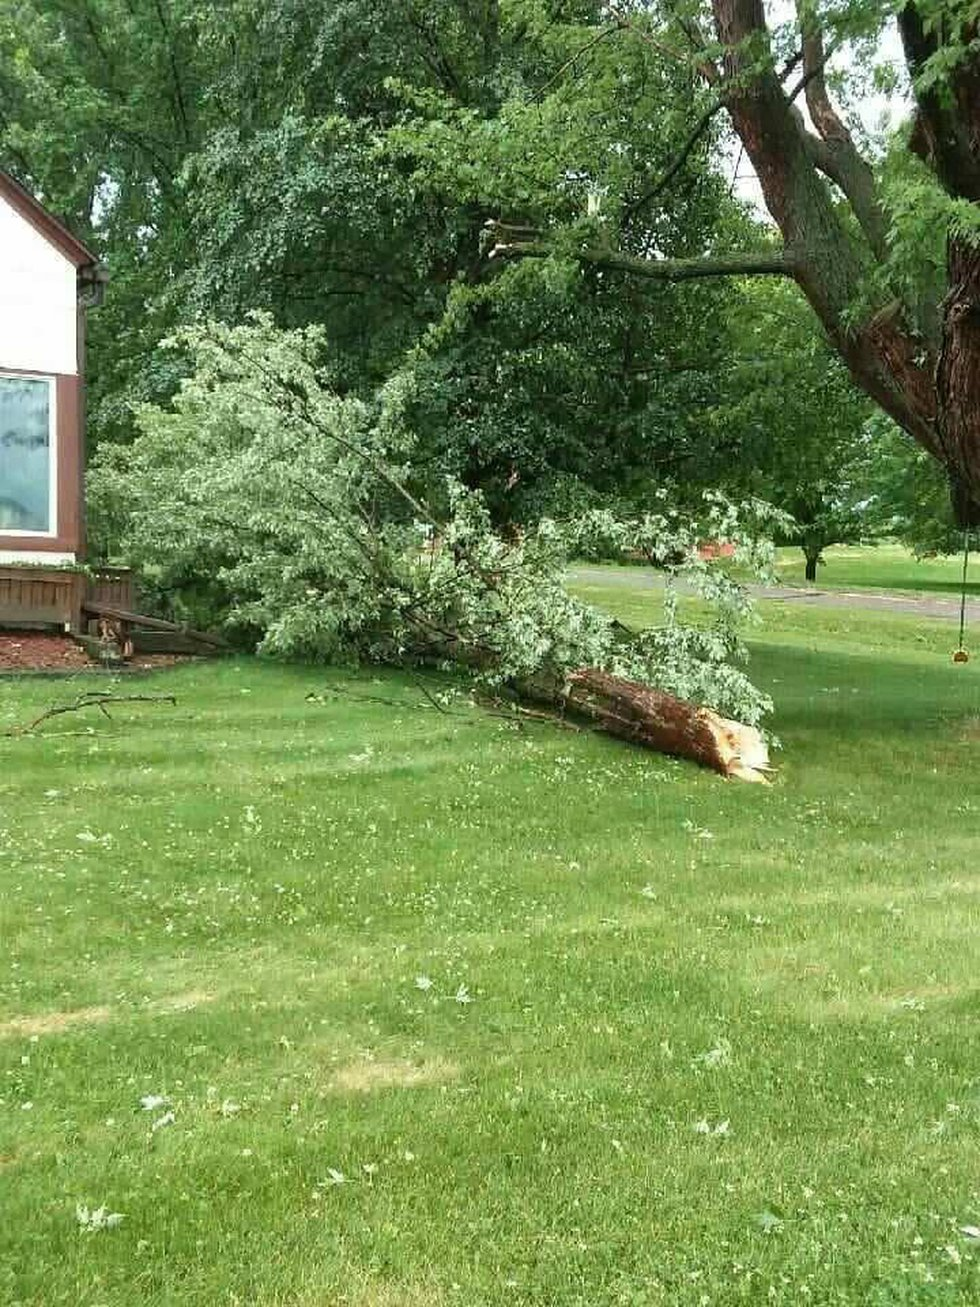 Large tree branch down